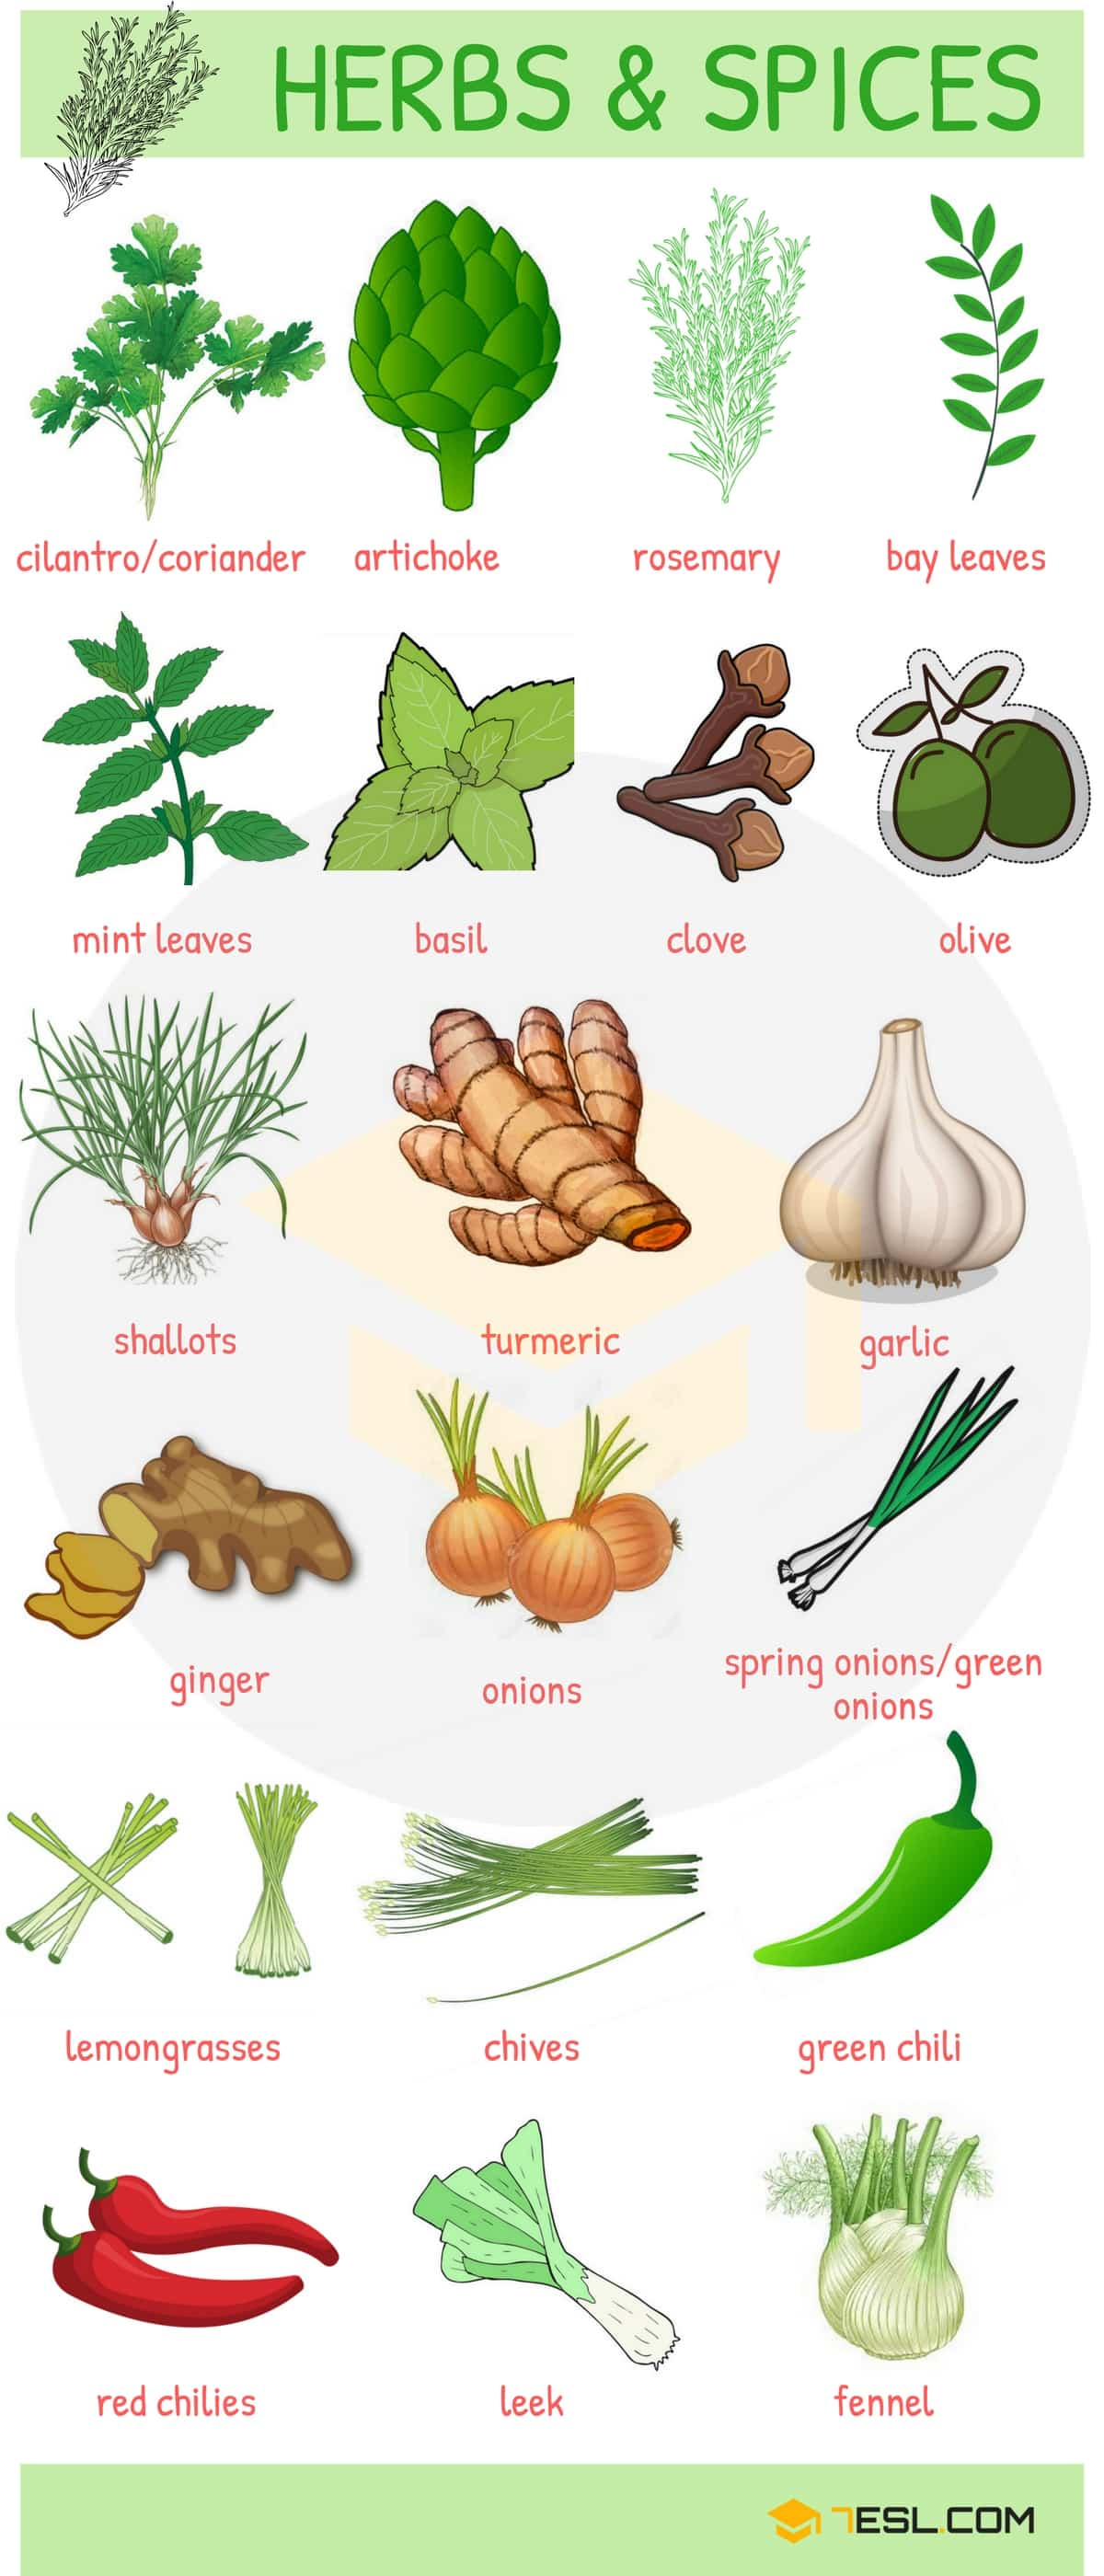 List of Herbs and Spices | Names of Spices and Herbs - 7 E S L